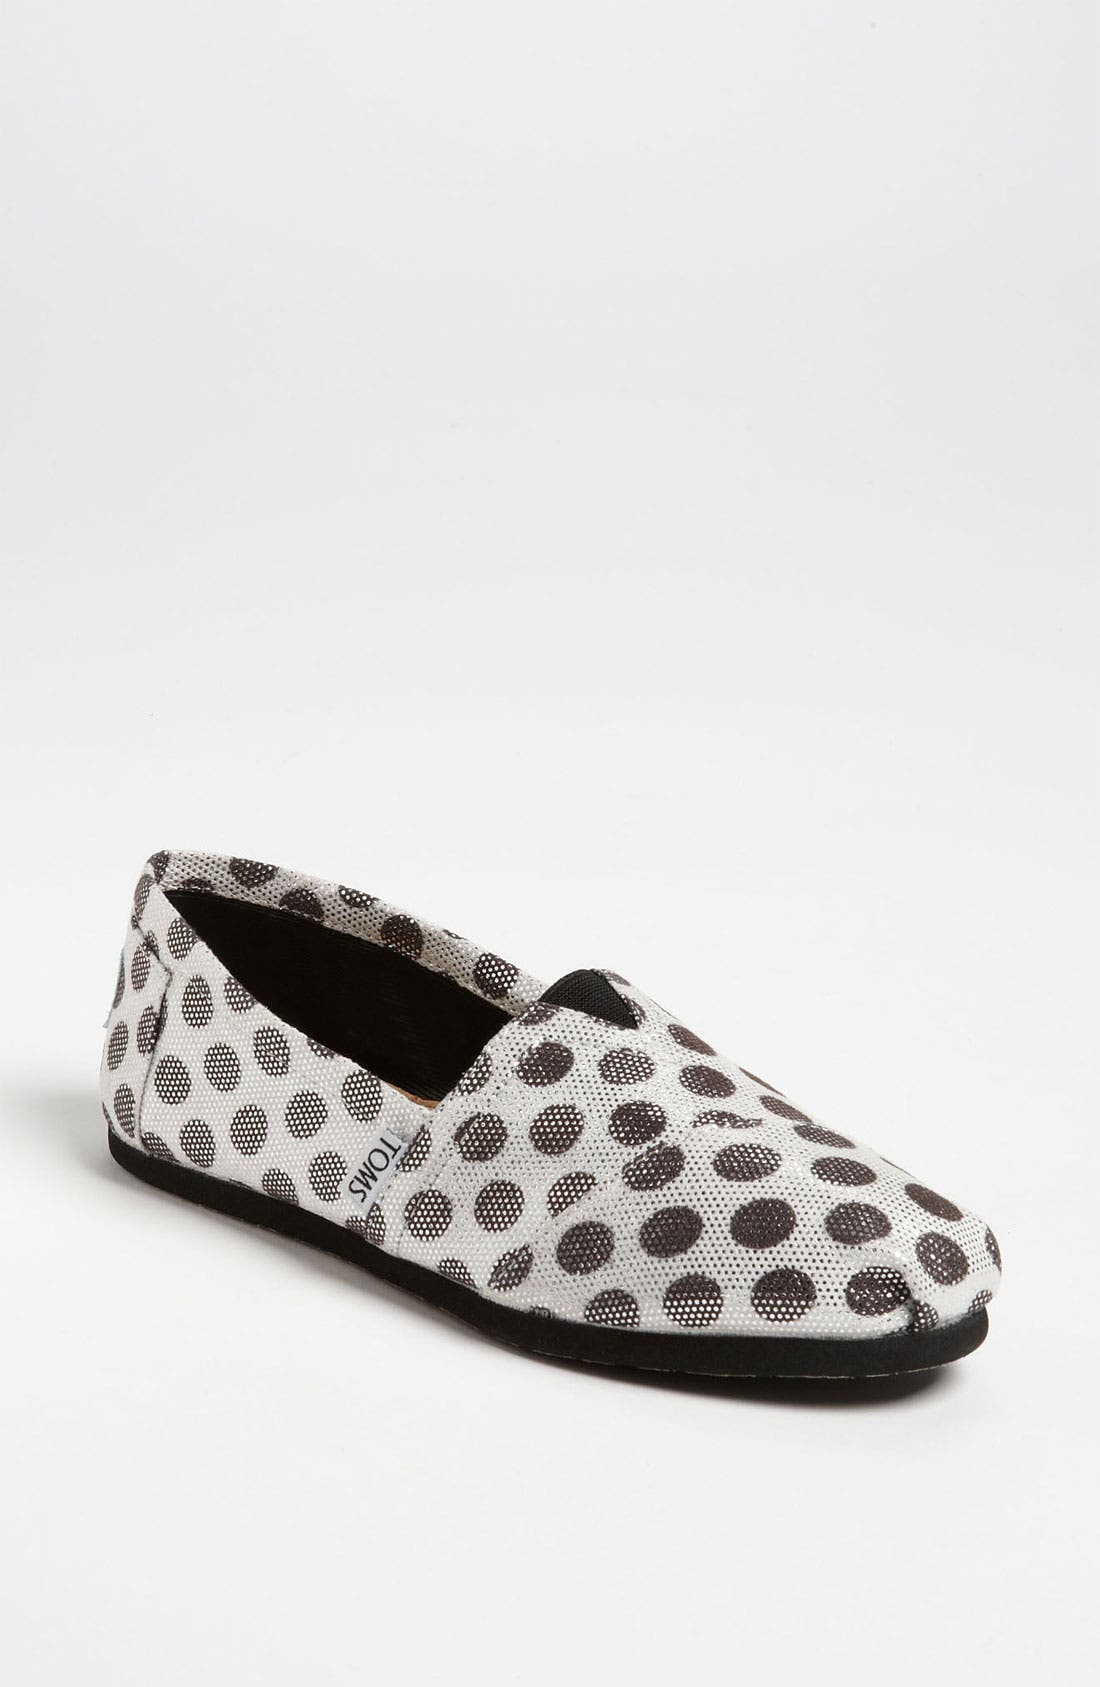 Alternate Image 1 Selected - TOMS 'Classic - Metallic Dot' Slip-On (Women)